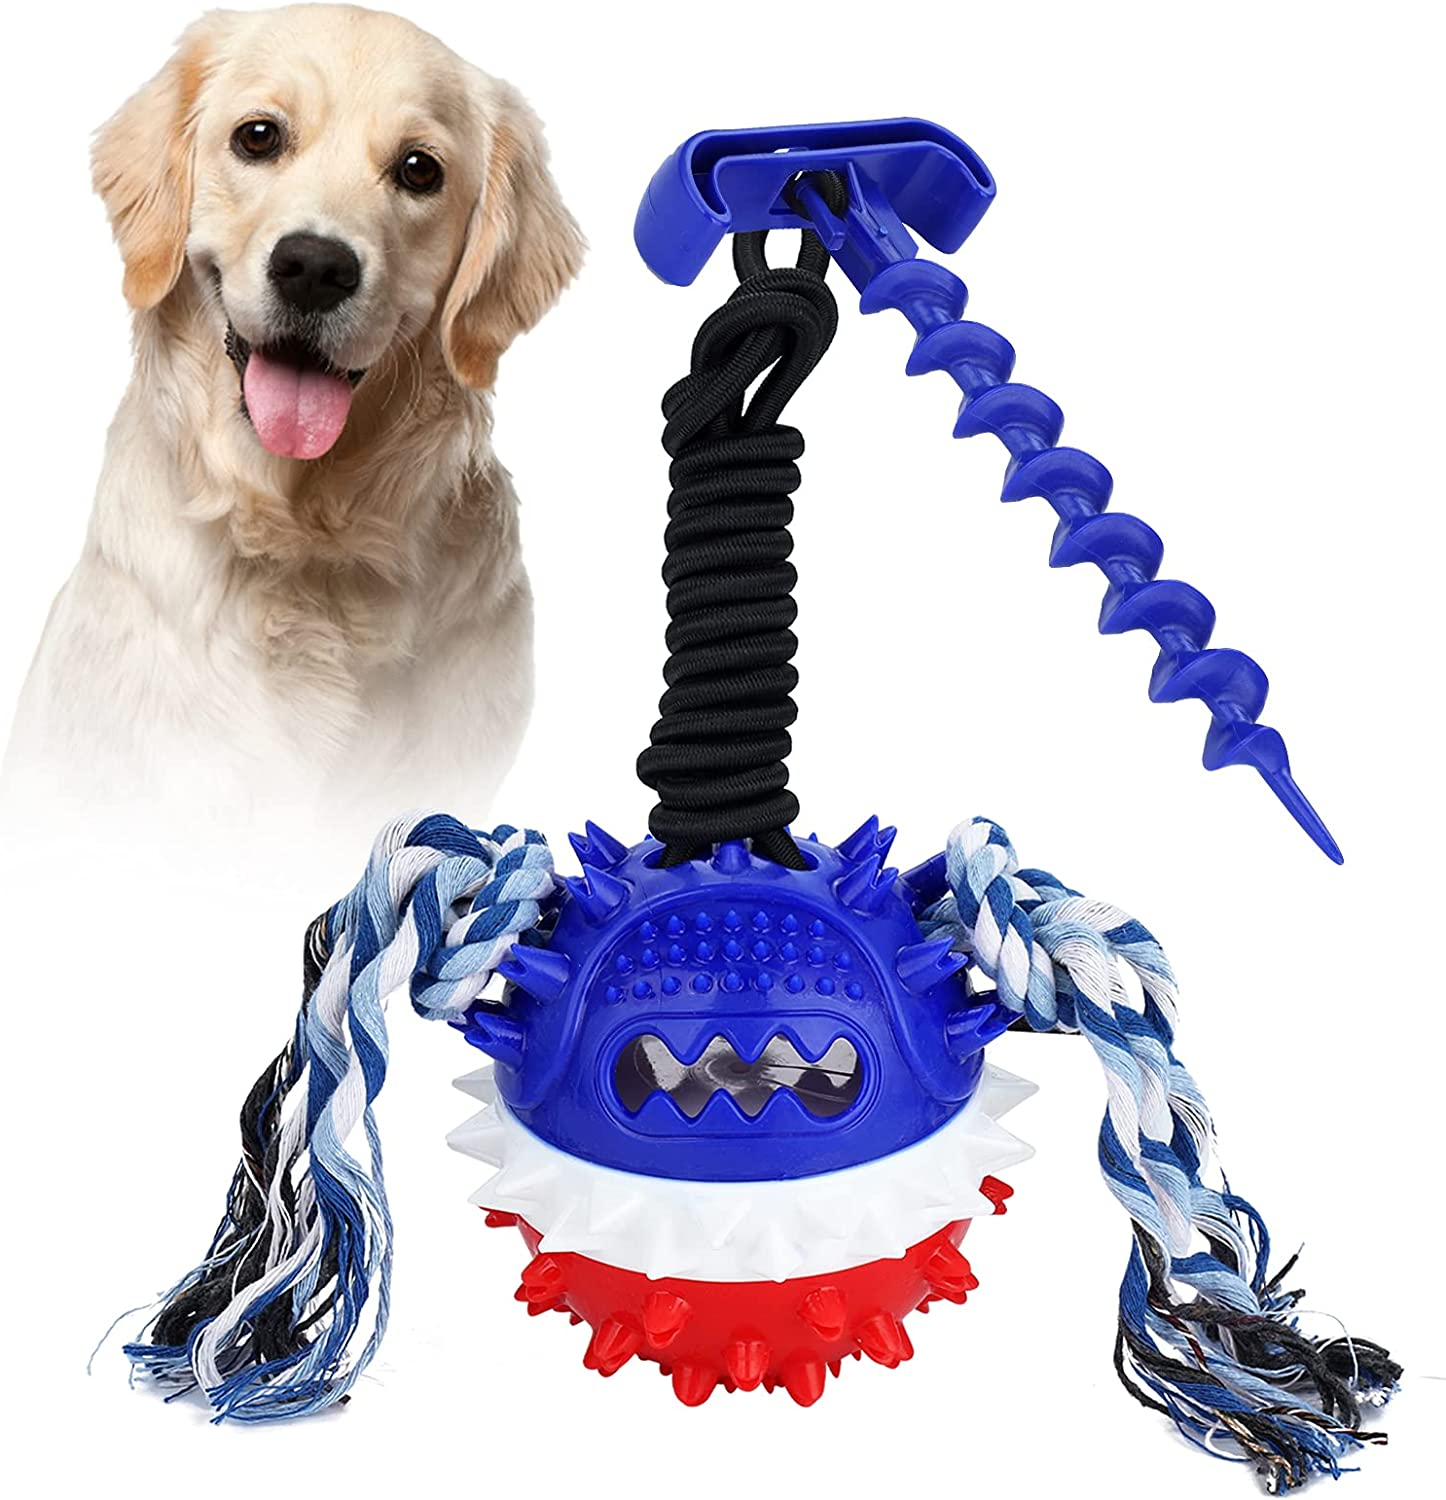 Dogs Training Treats Teething Rope Toy with Lawn Bolt, Outdoor Interactive Toy for Puppy, with Leaking Trough, Dog Rope Toys for Aggressive Chewers for Small Large Dogs, Durable Chew Toys for Boredom